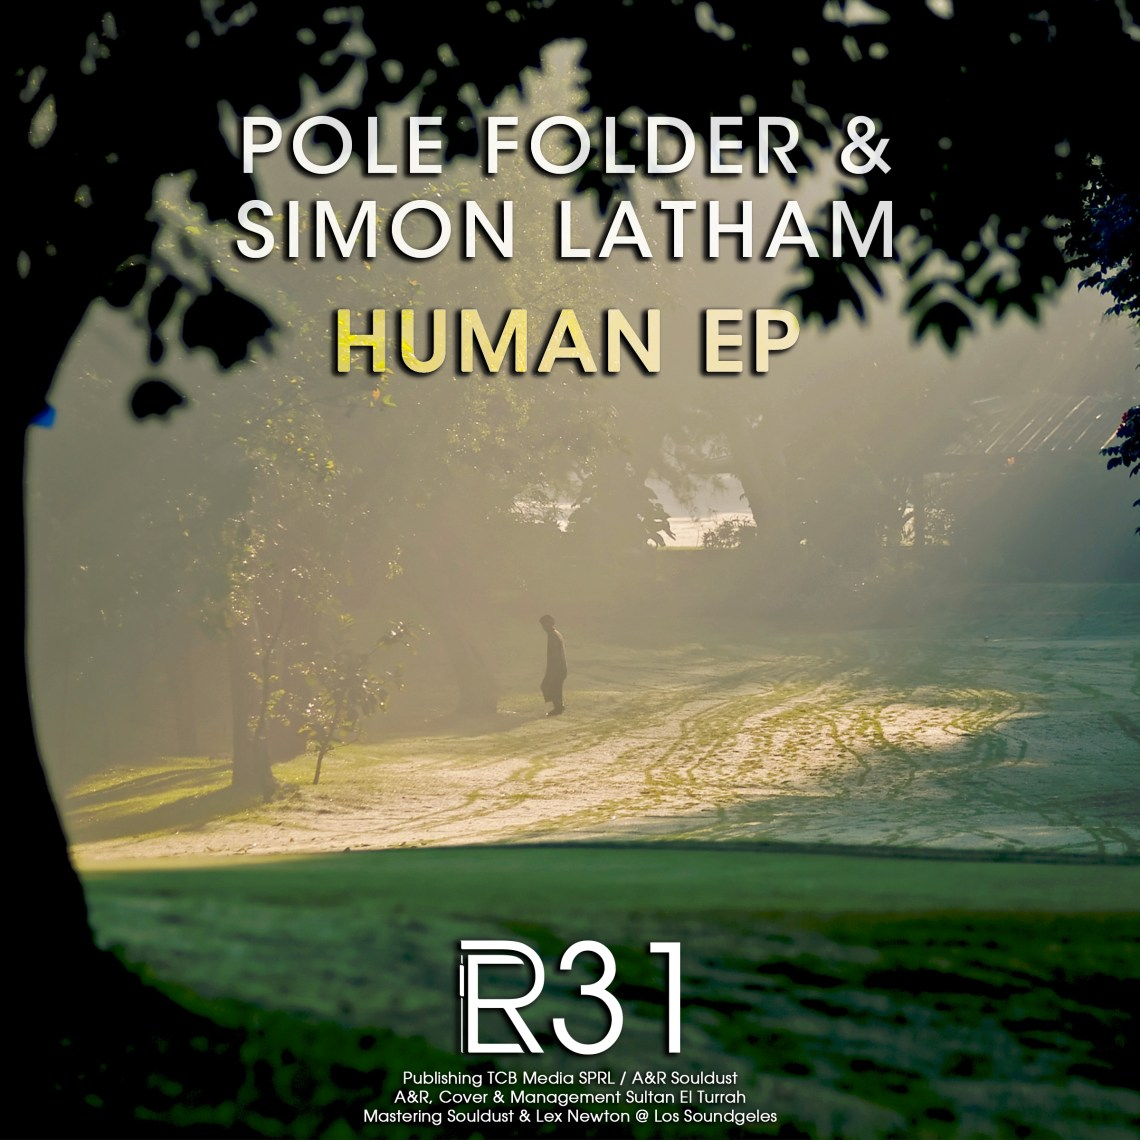 ER031 - Pole Folder & Simon Latham - Human EP (incl. GusGus Remix) - Electronical Reeds